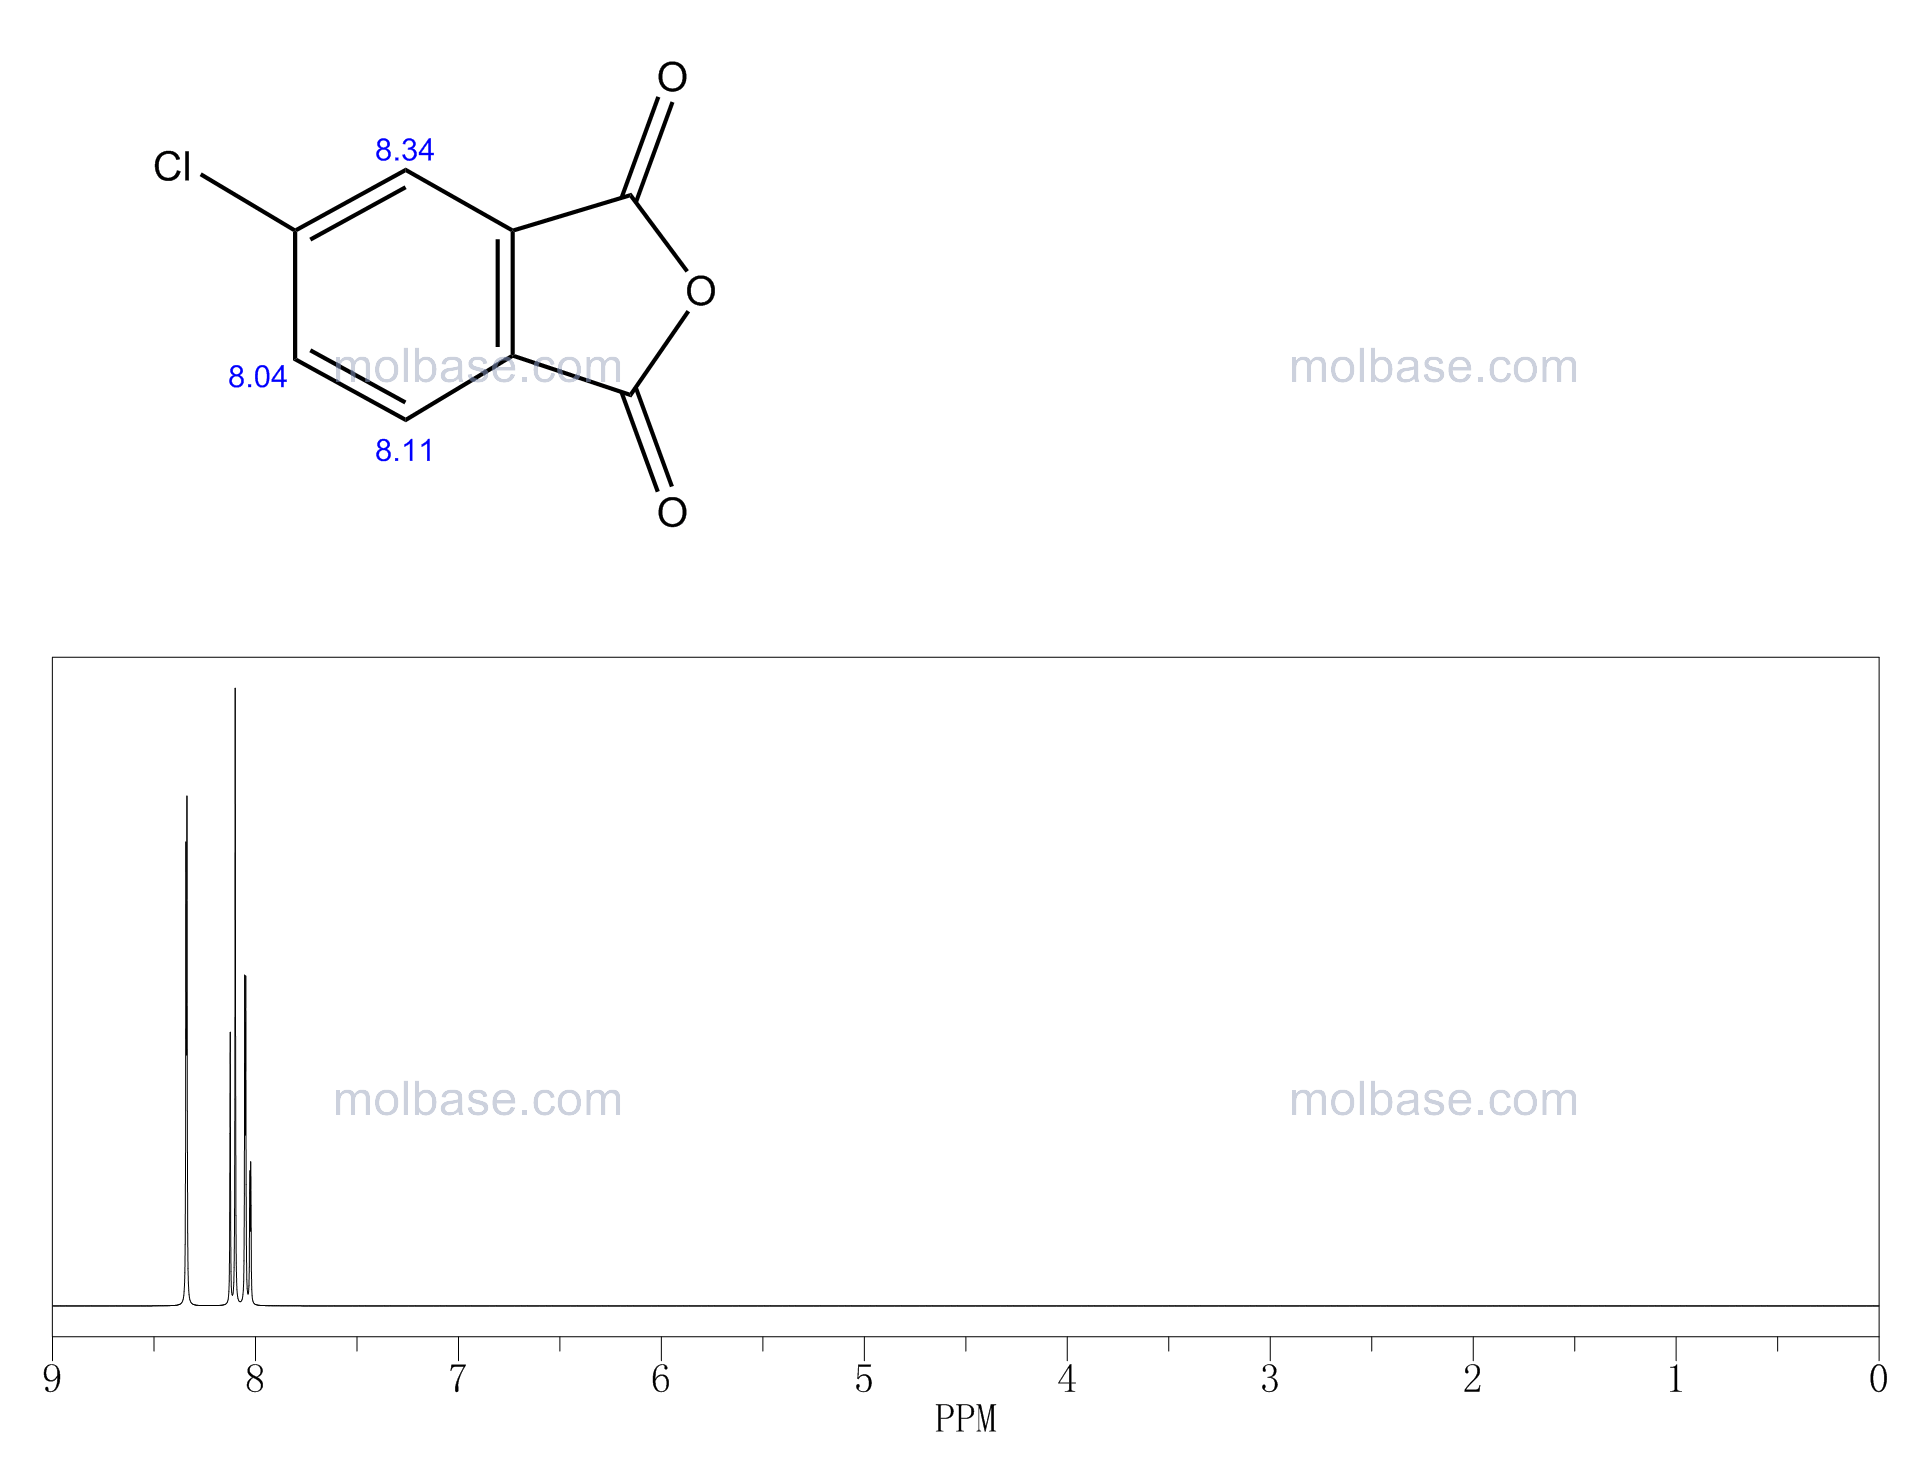 4-Chlorophthalic Anhydride NMR spectra analysis, Chemical CAS NO. 118-45-6 NMR spectral analysis, 4-Chlorophthalic Anhydride C-NMR spectrum